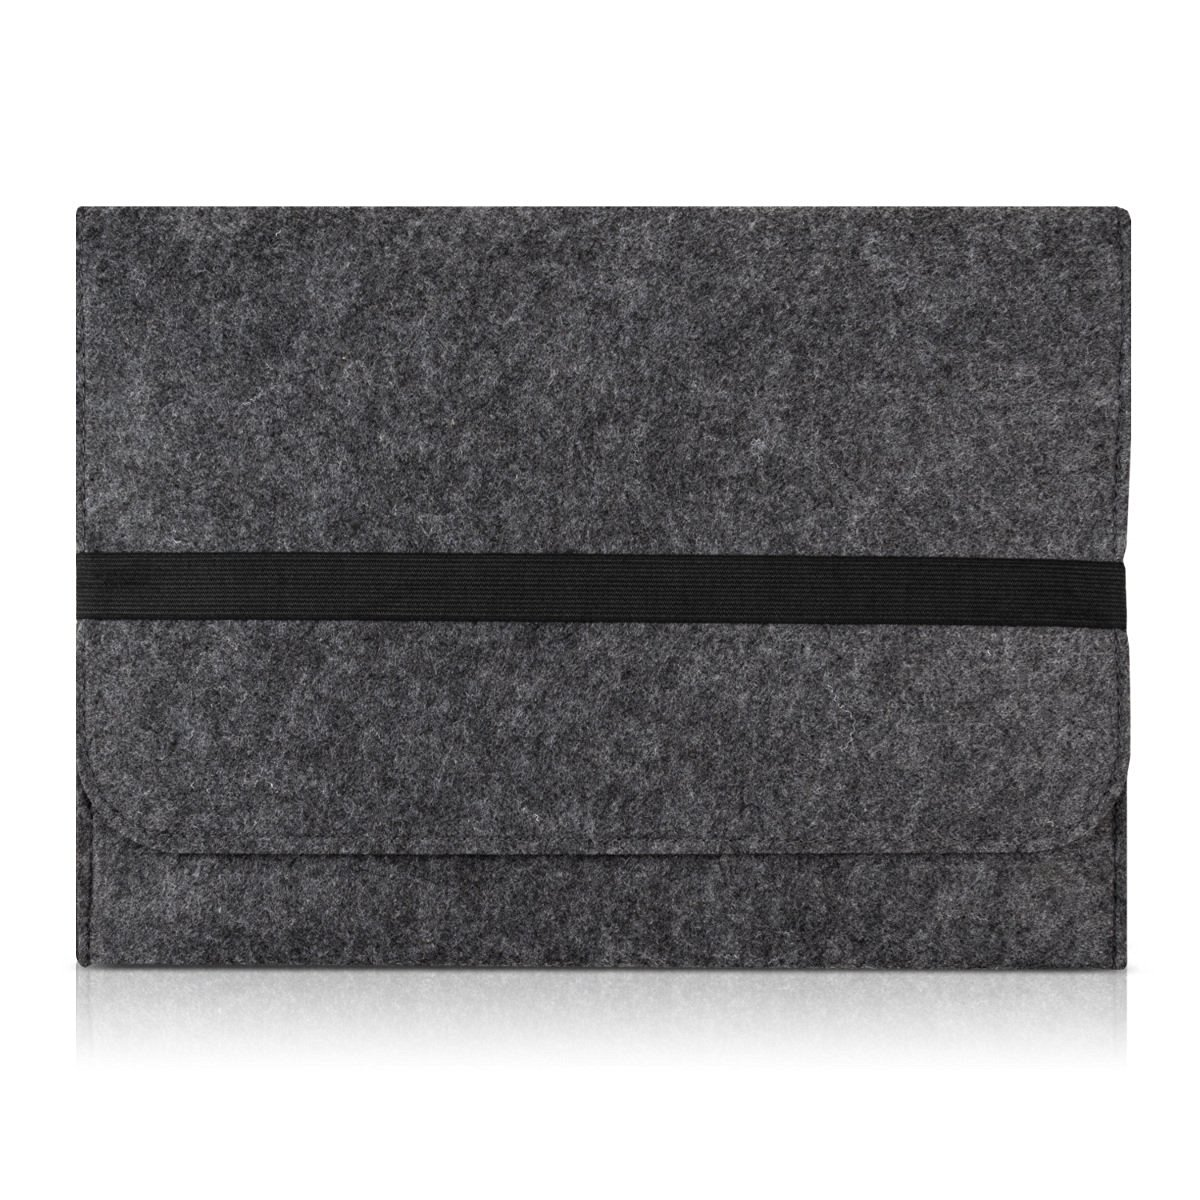 """kwmobile laptop cover felt case for 12,5"""" 13"""" 13,3"""" Laptop / Ultrabook - notebook bag protective cover in dark grey with internal pockets Inner dimensions: approx. 34,5 x 26 cm"""